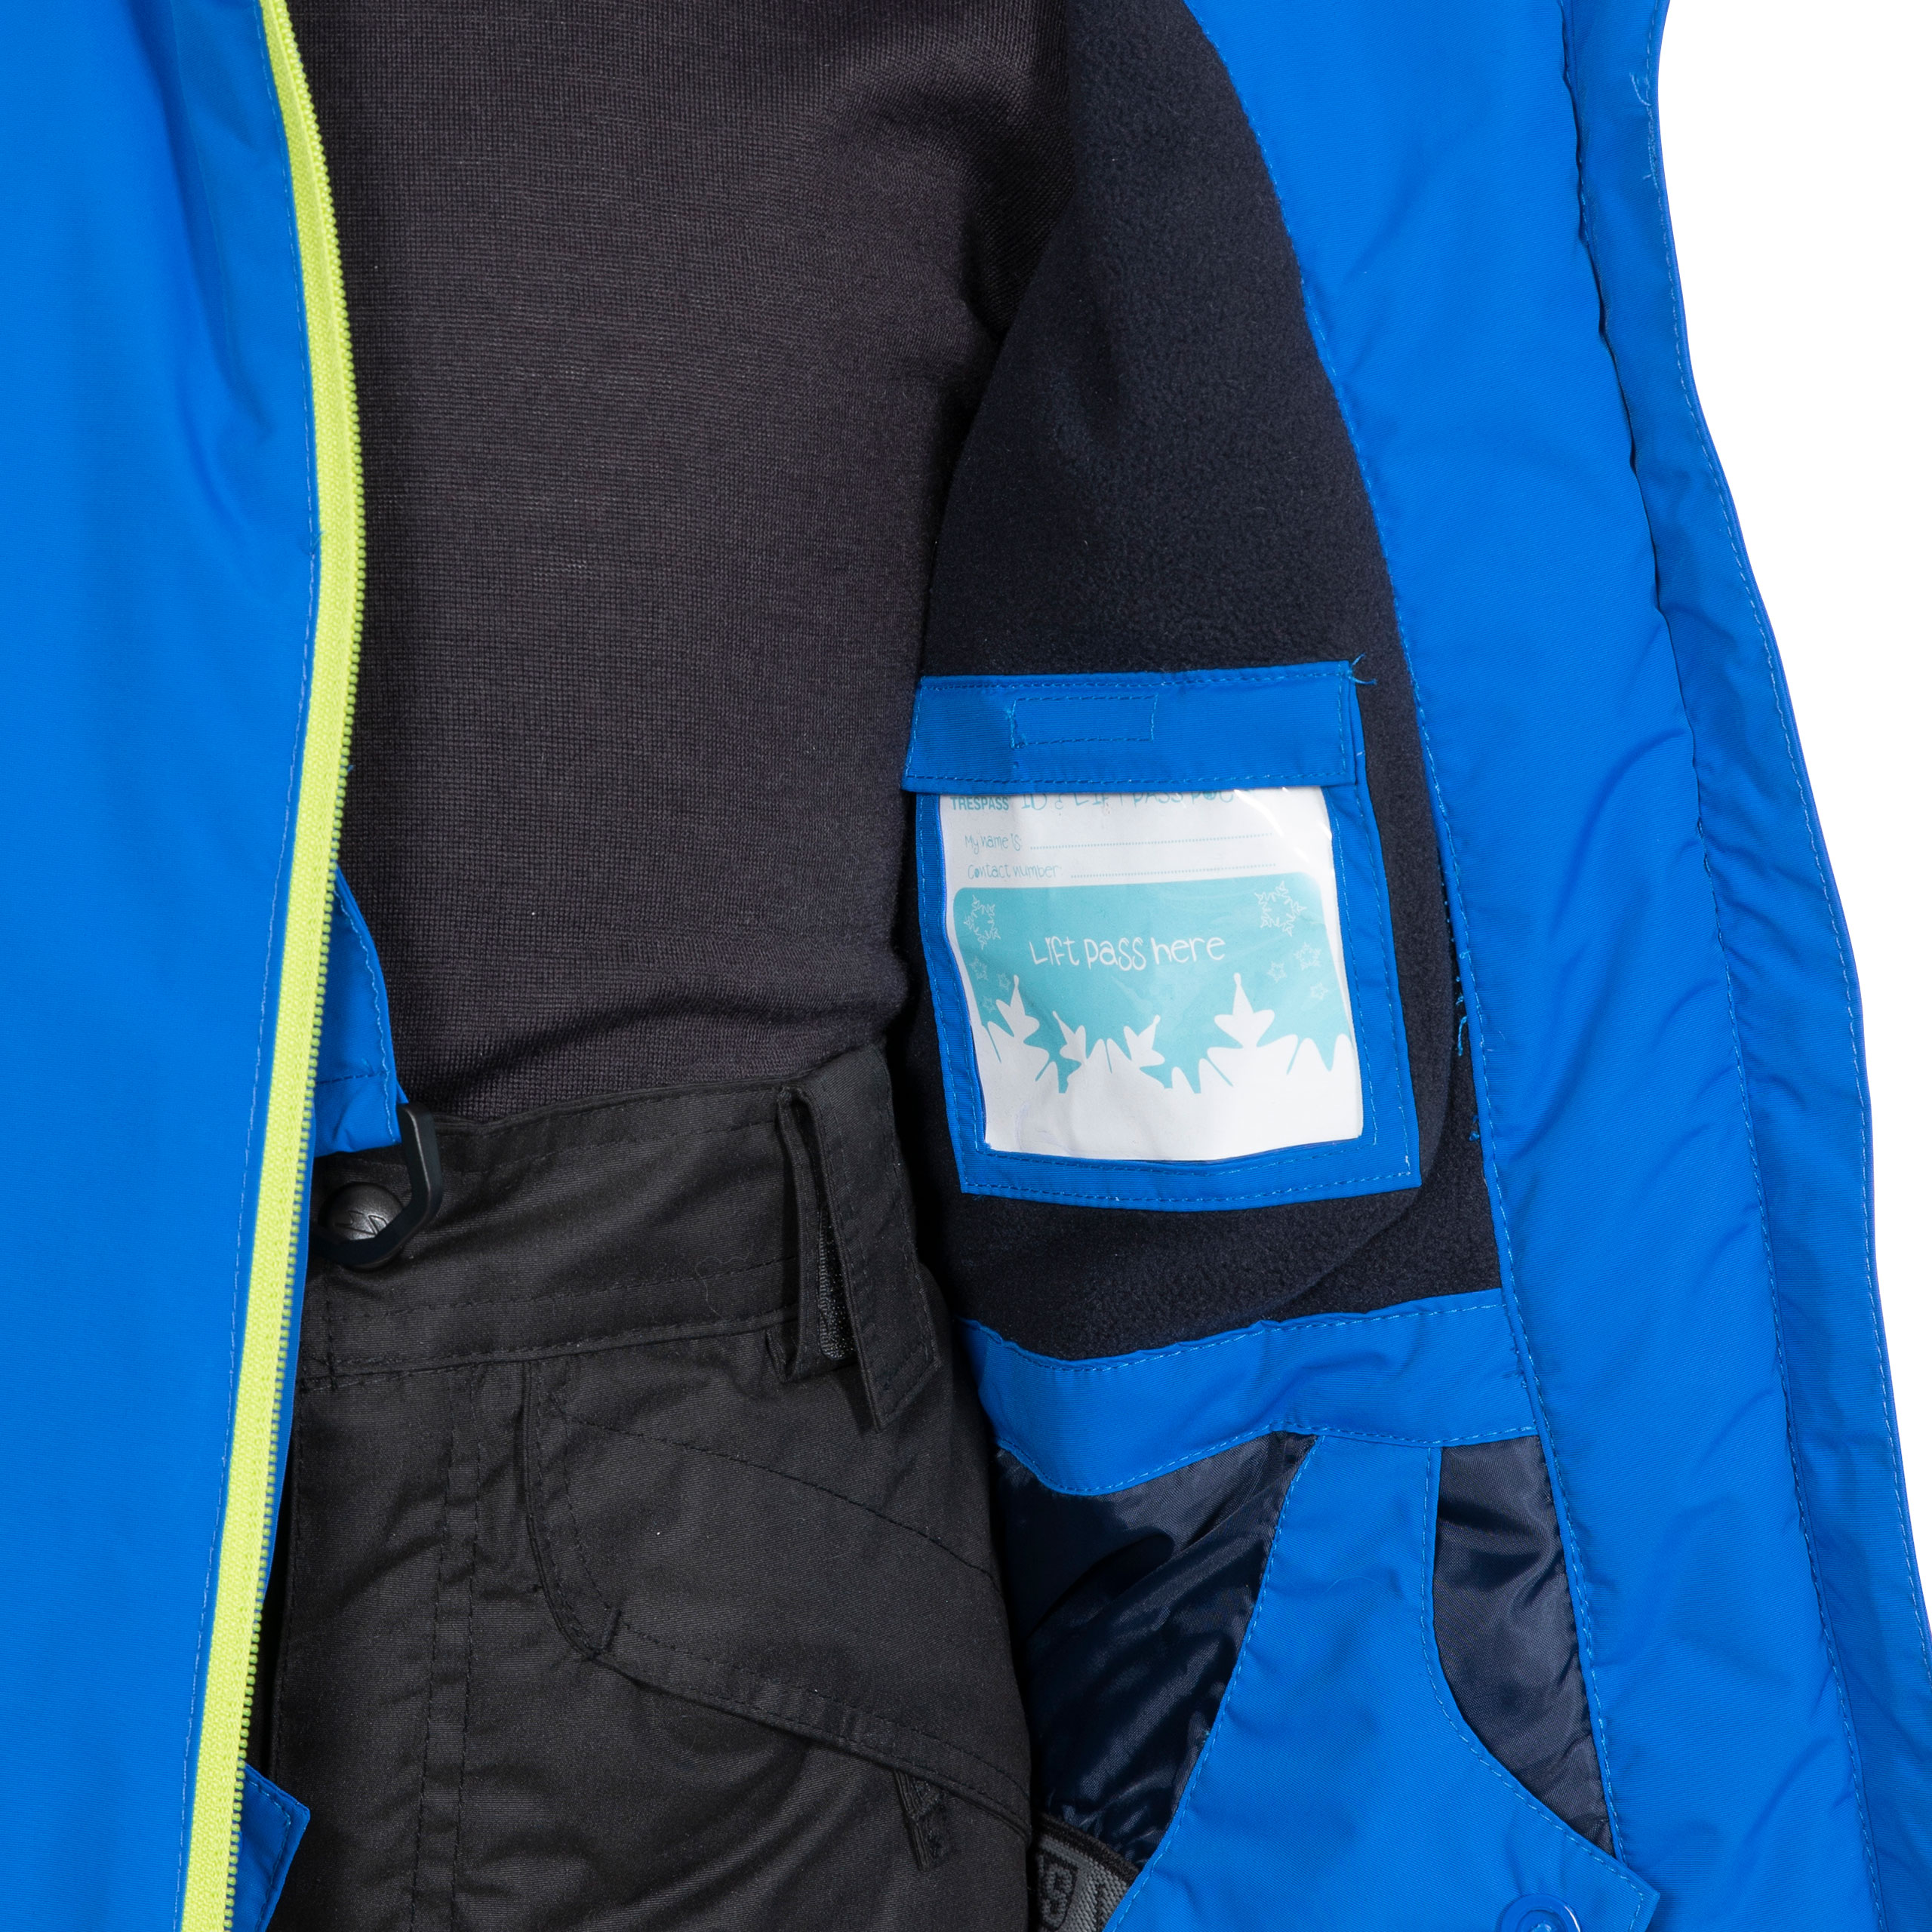 Trespass-Boys-Ski-Jacket-Waterproof-Blue-Hooded-Warm-Coat-Kids-2-12-Years thumbnail 12